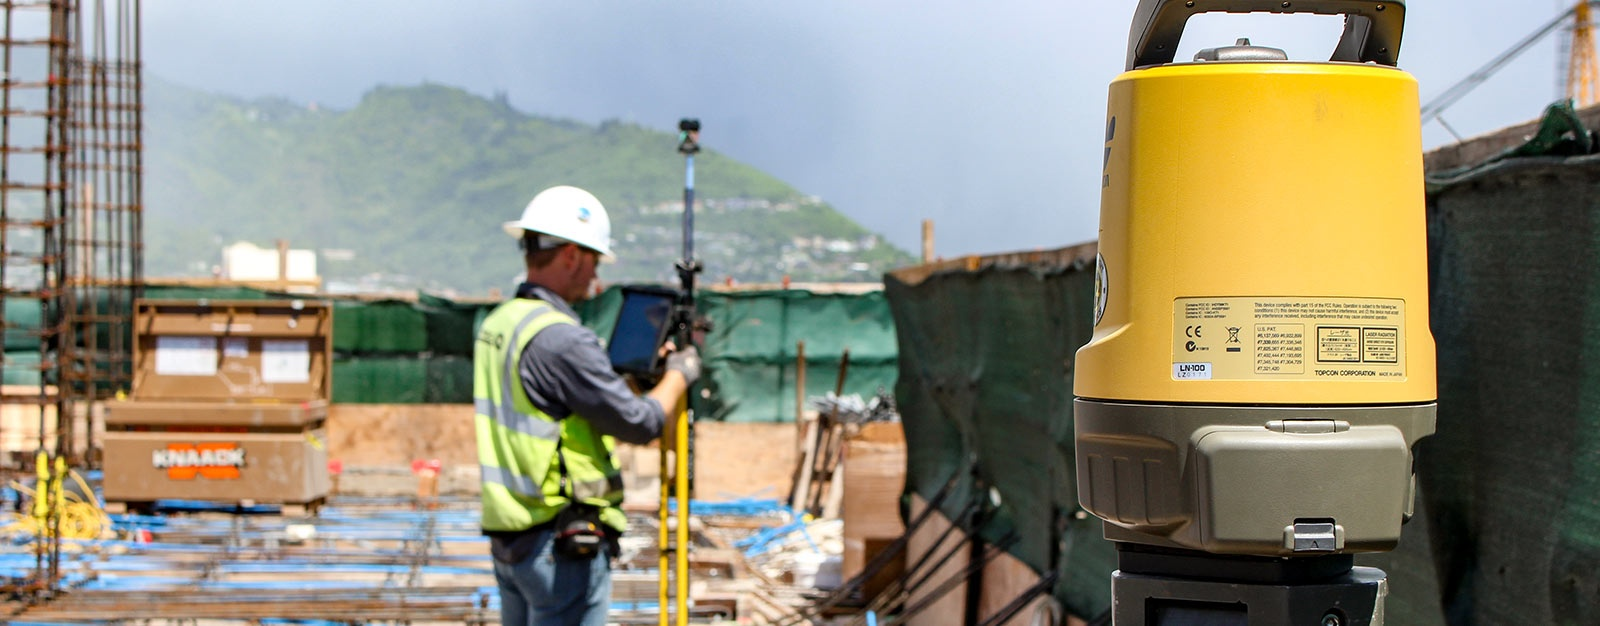 Topcon Ln 100 Streamlines Layout In Hawaii High Rise Curtain Wall Piping Engineer Jobs Singapore